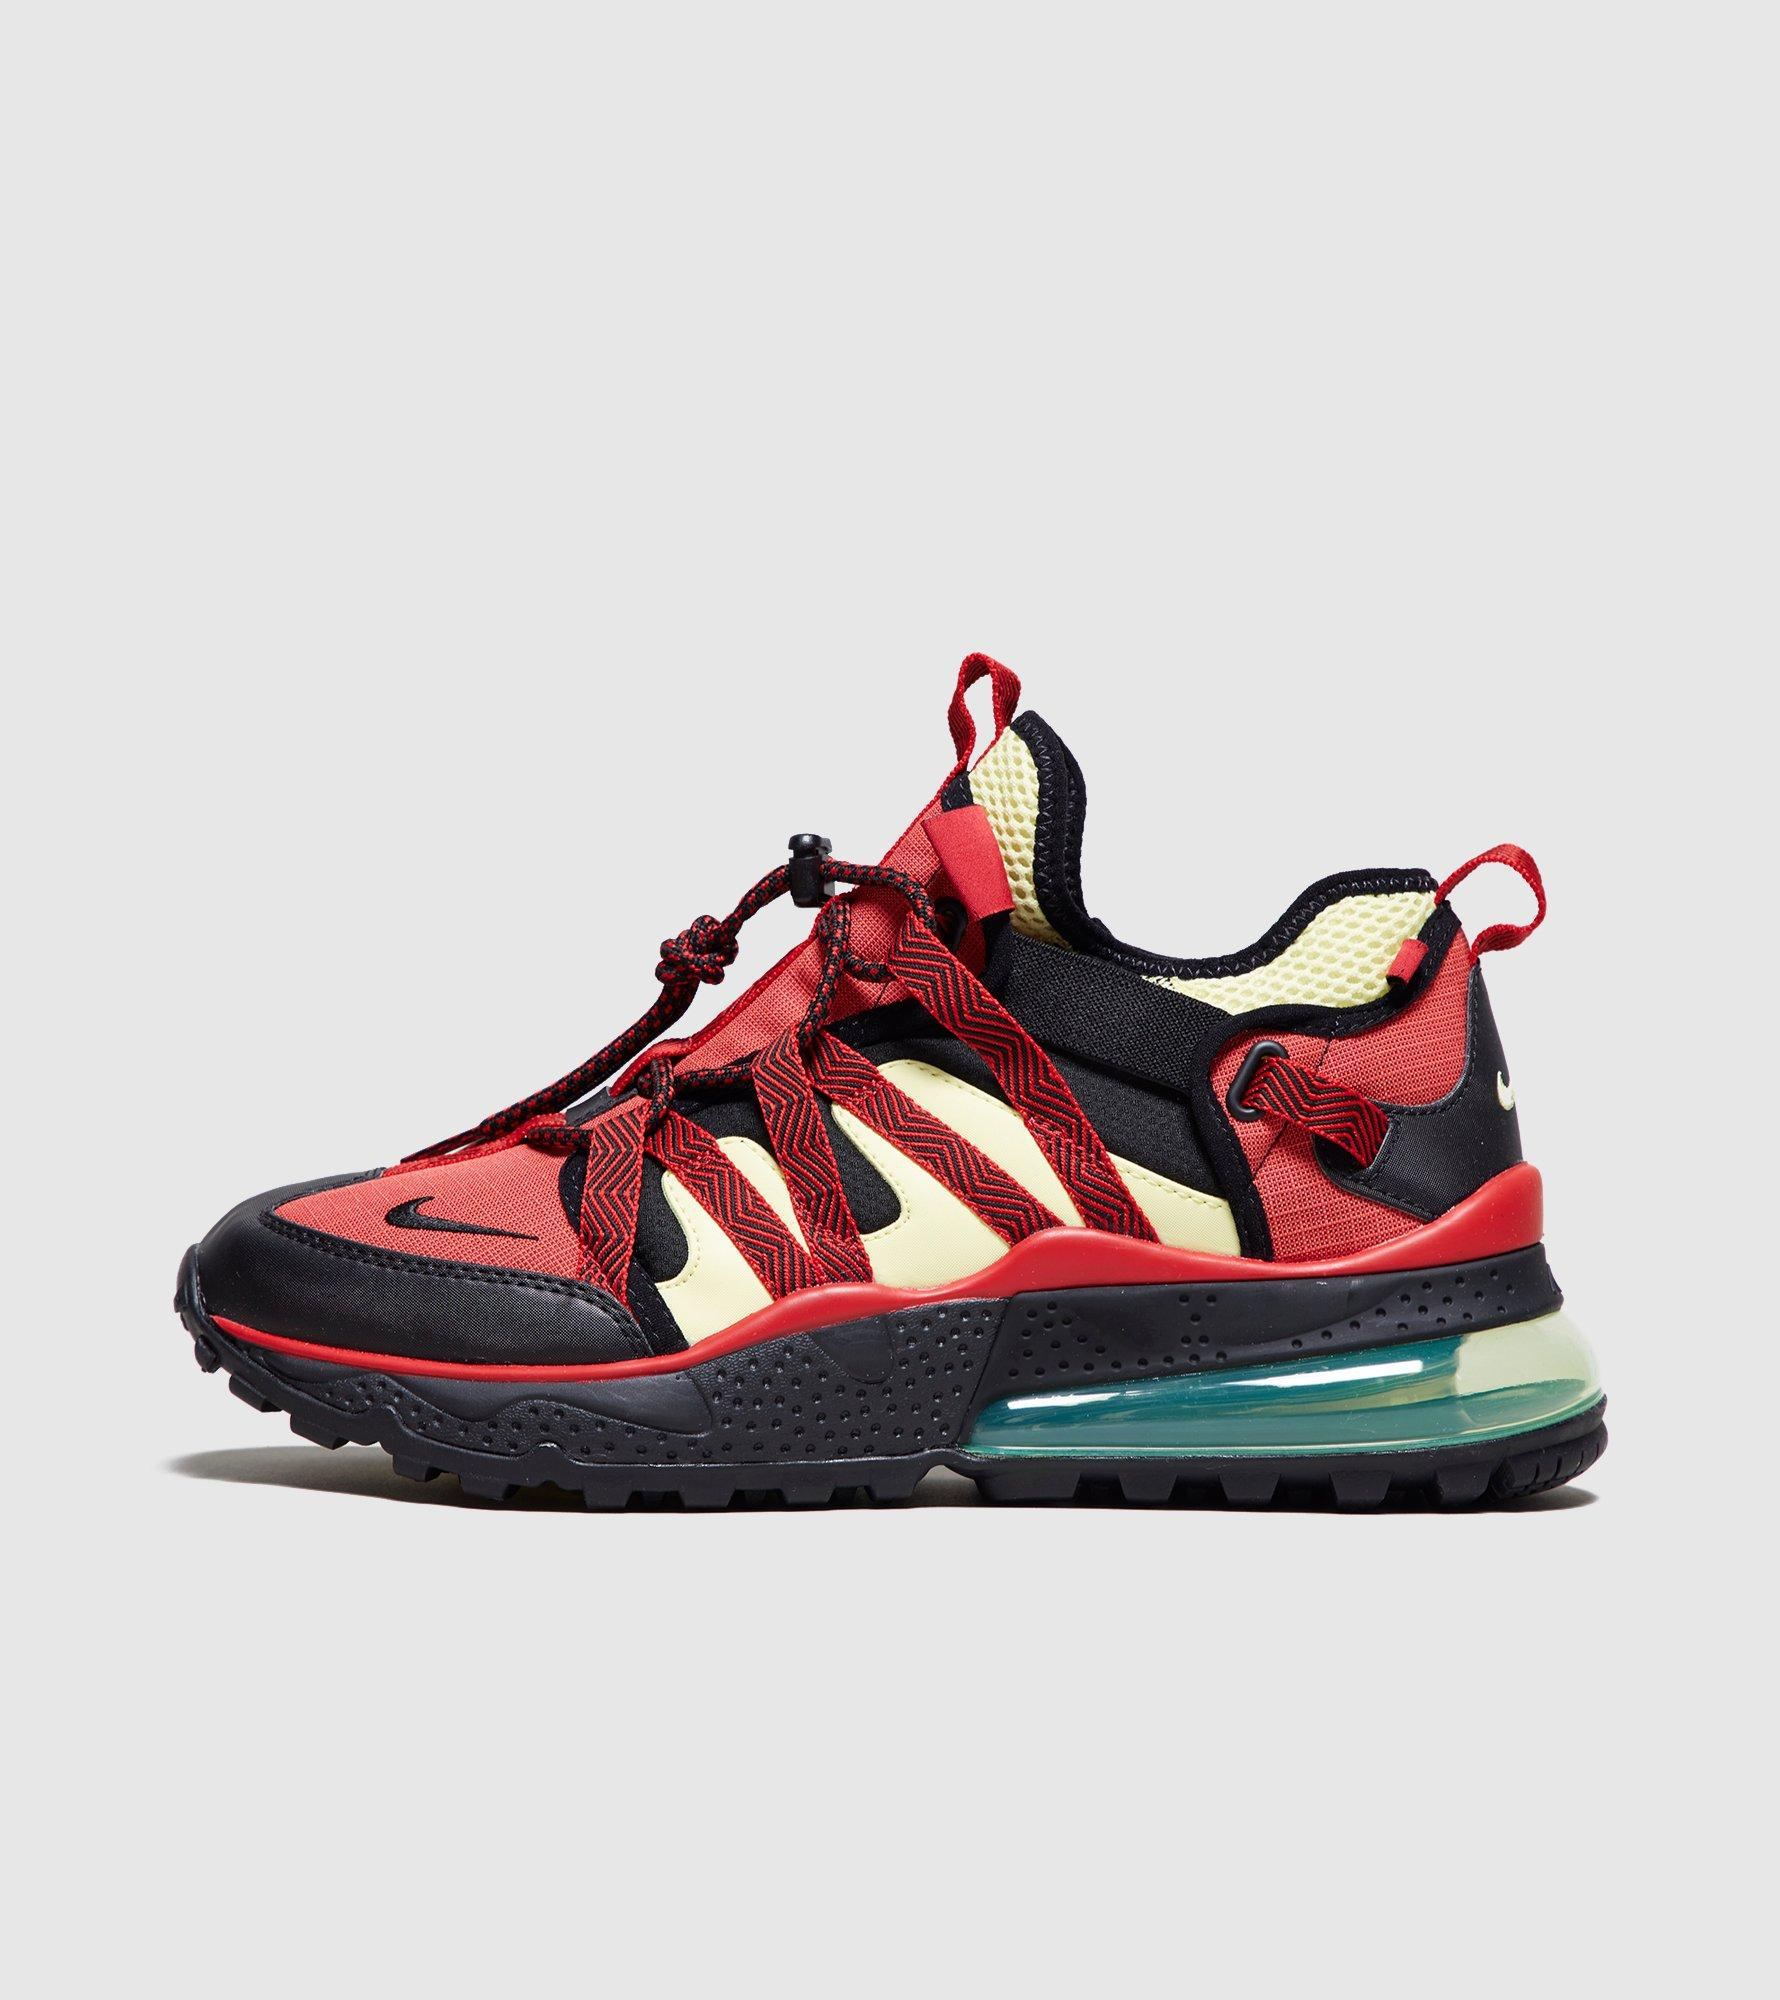 promo code dbbee e3676 Nike Air Max 270 Bowfin in Black for Men - Lyst